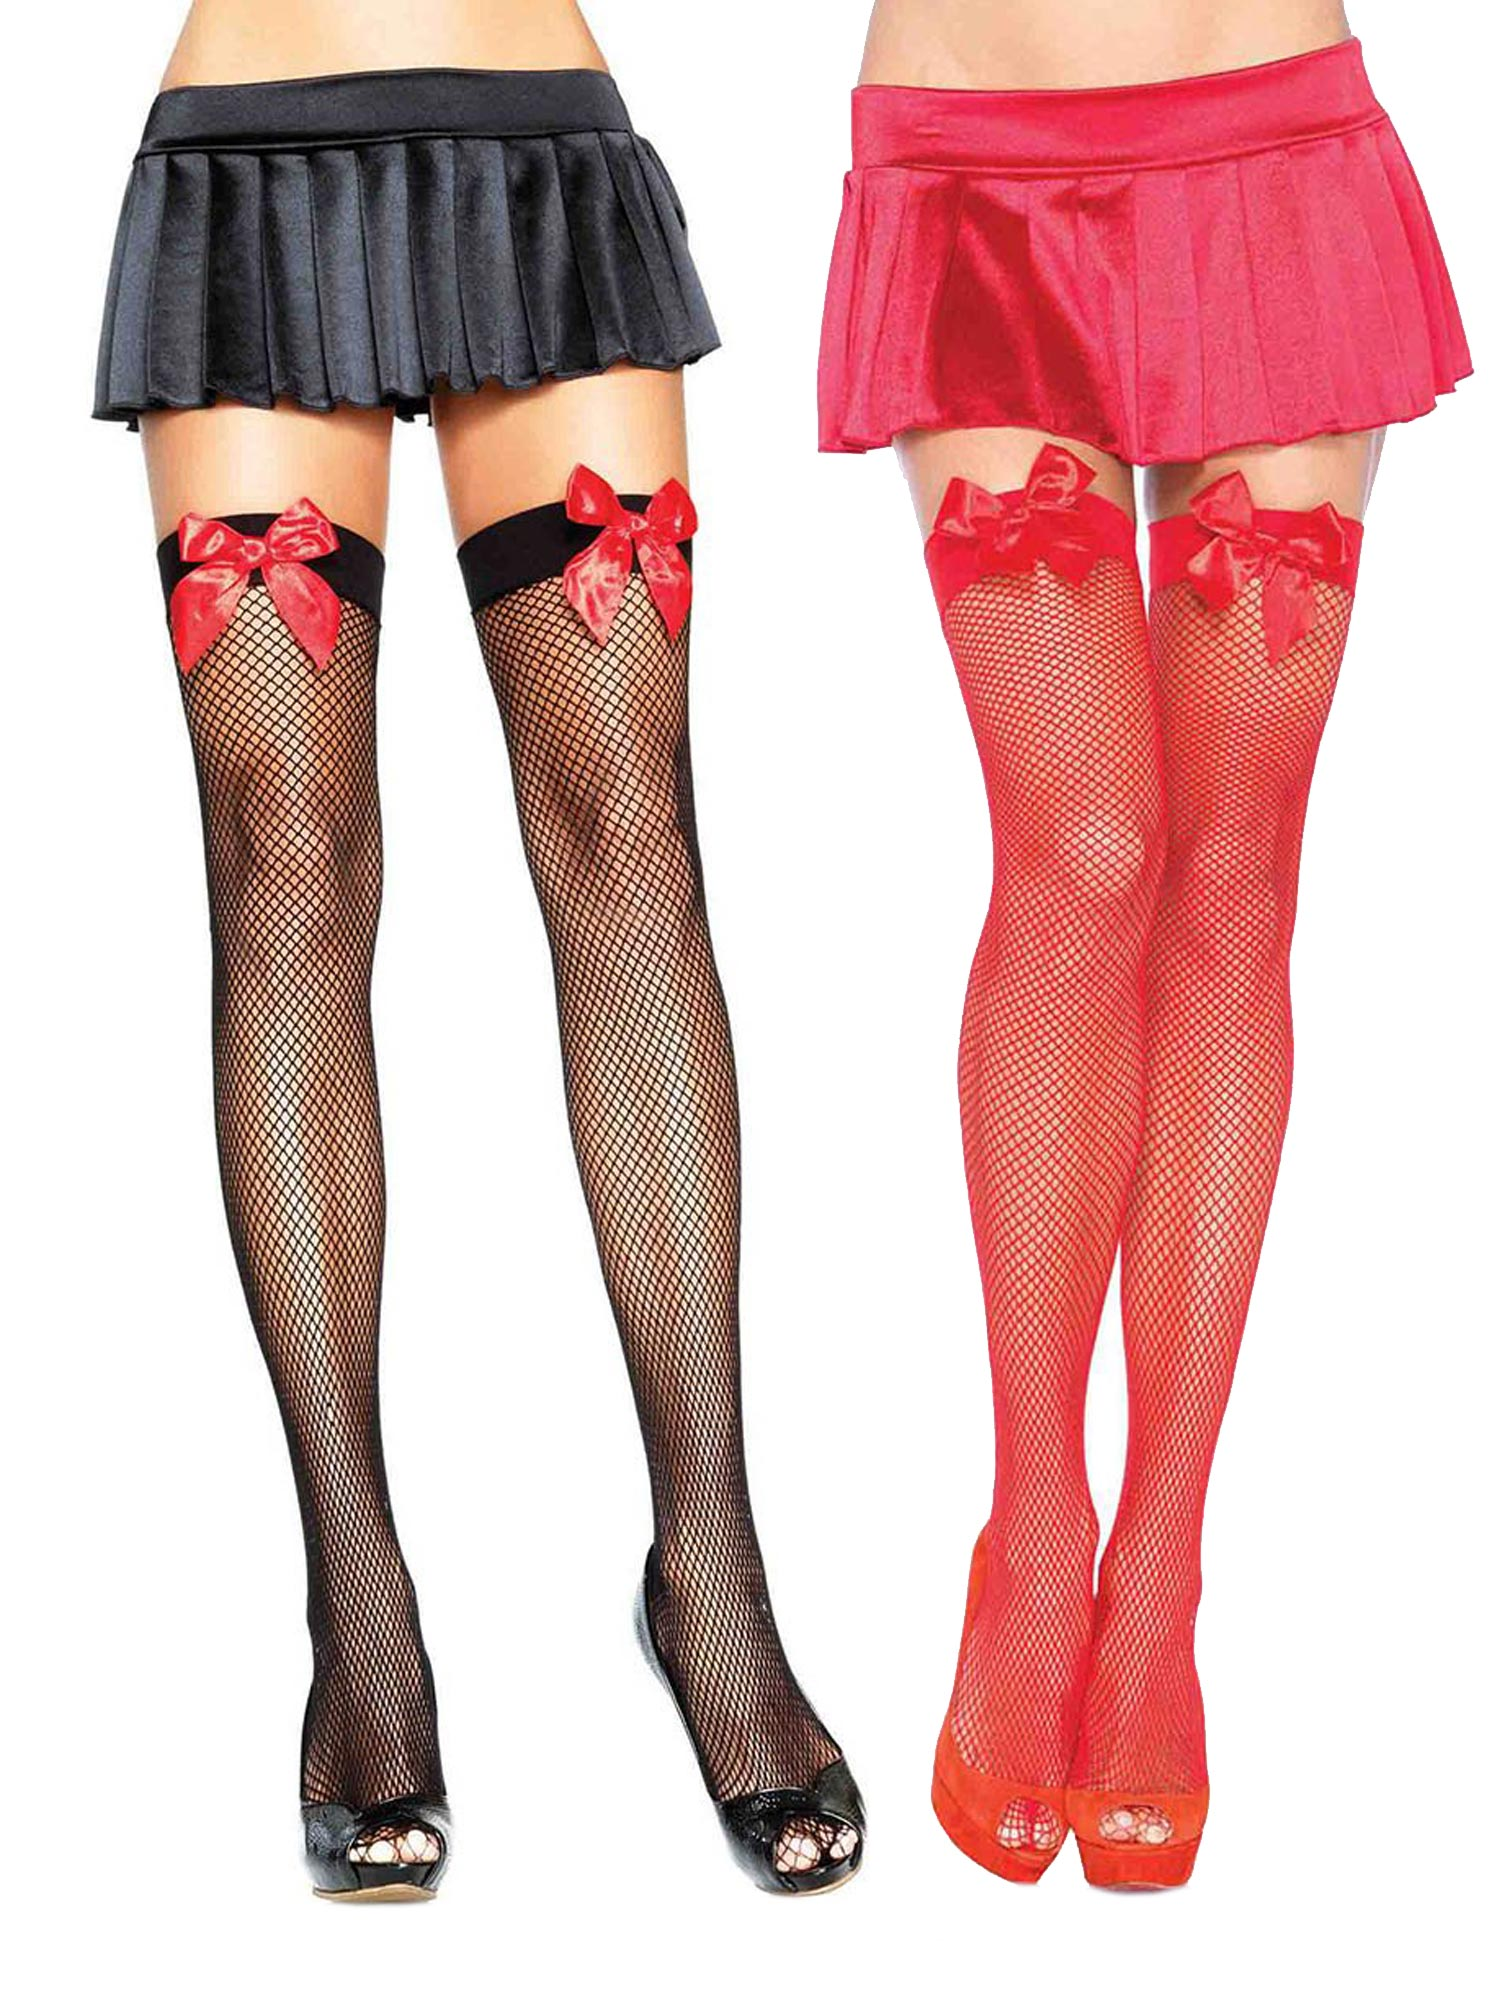 e0e895d9e Womens Holiday Stockings Satin Bow Fishnet Black and Red Thigh High Hosiery  Tights- Pack of 2 - Walmart.com